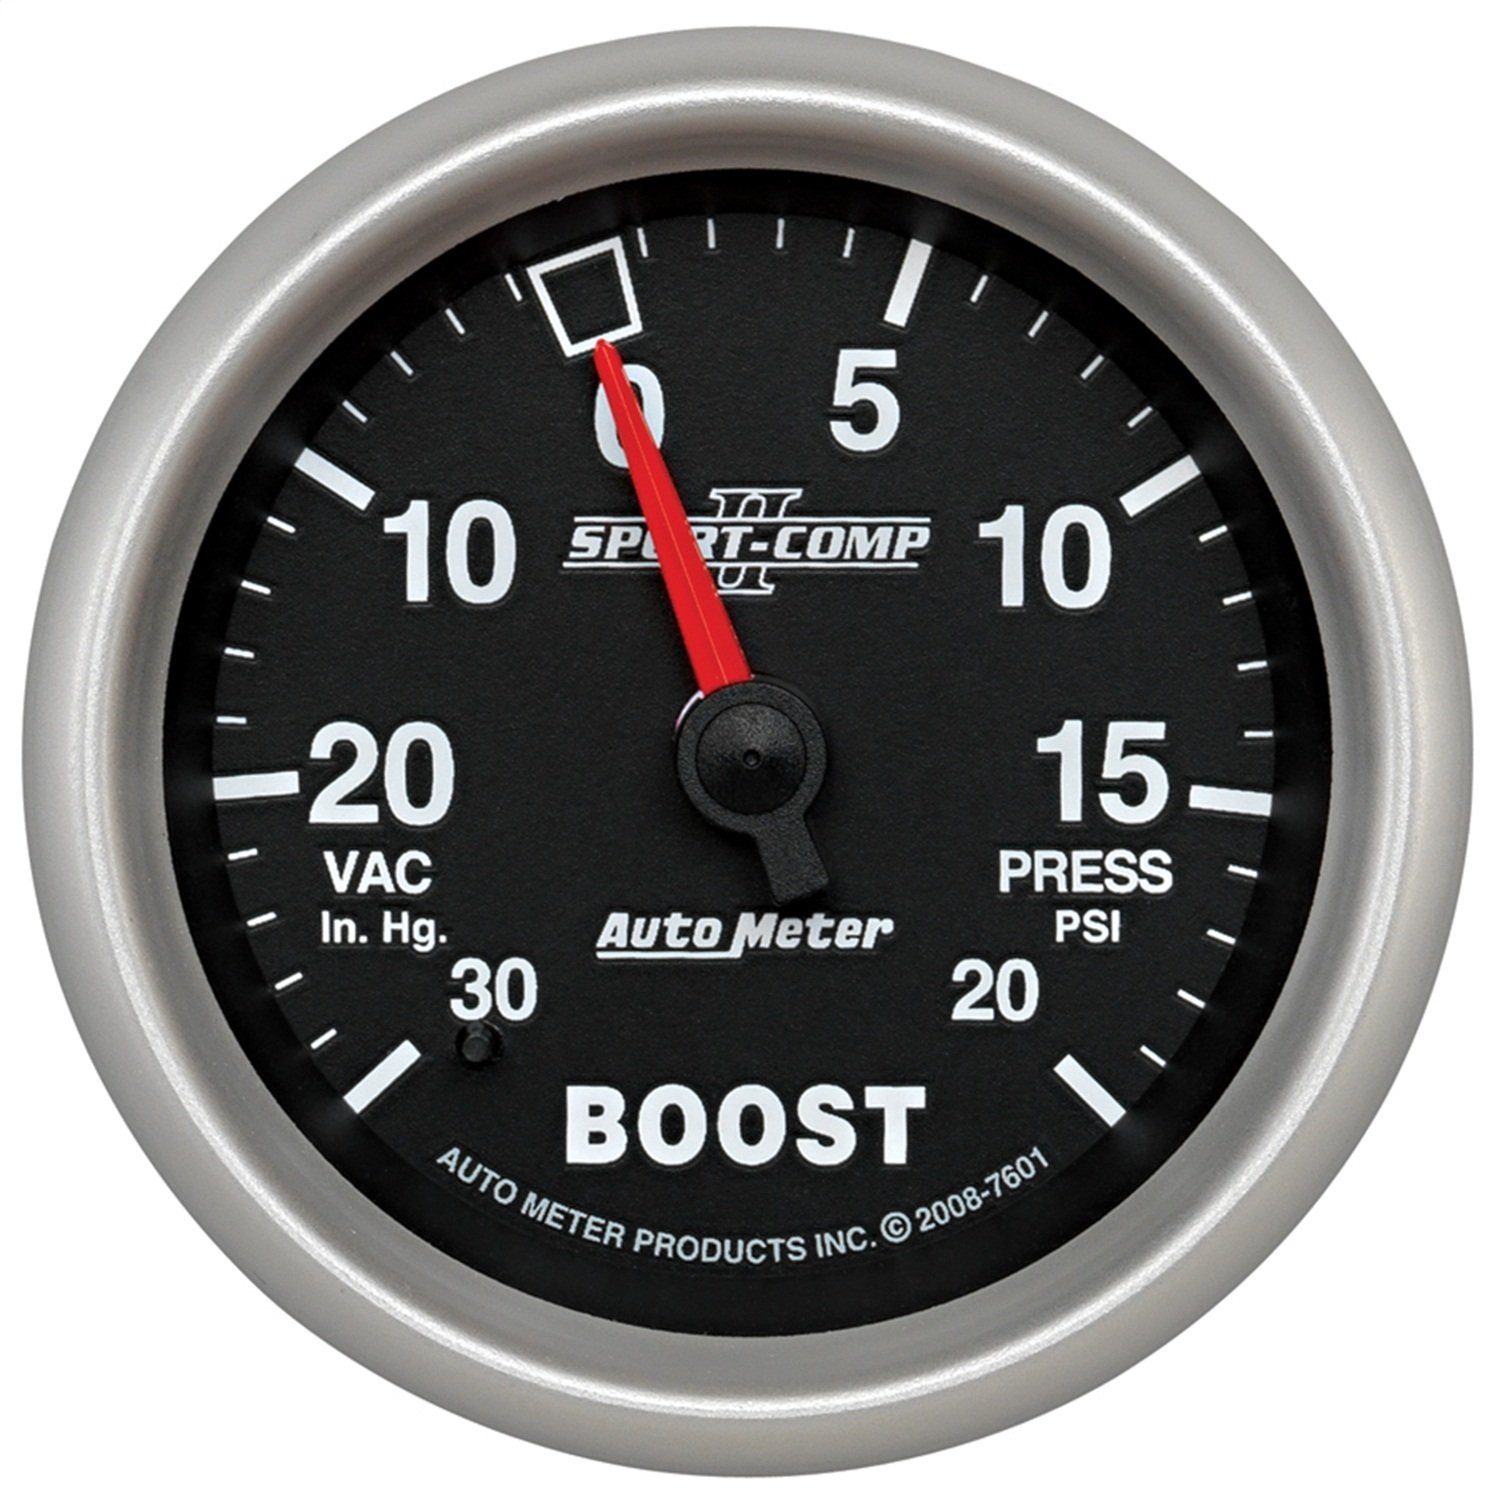 Auto Meter 7601 Sport-Comp II 2-5/8'' 30 in. Hg/20 PSI Mechanical Vacuum/Boost Gauge by AUTO METER